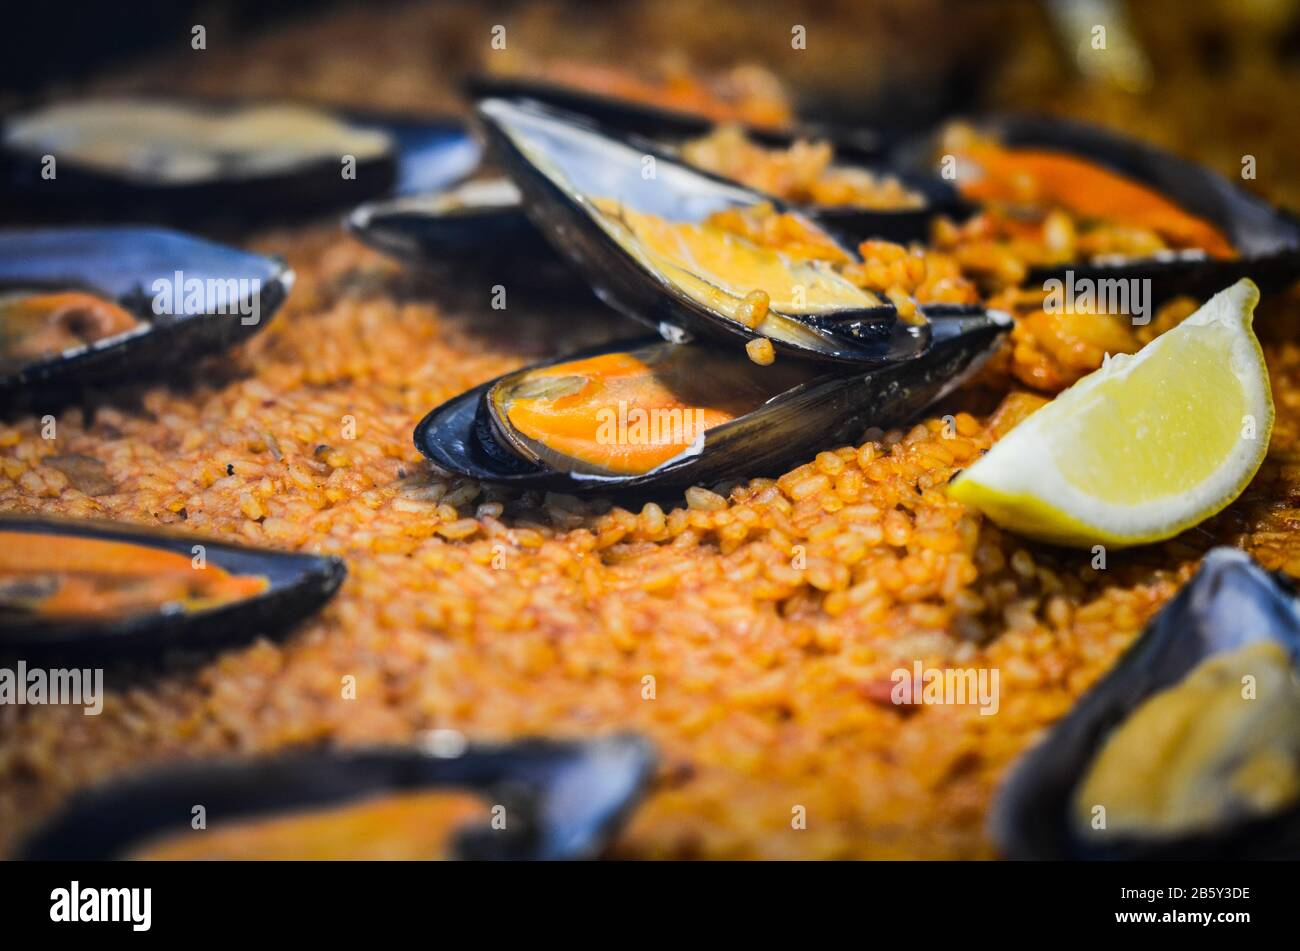 spanish paella dish with fresh seafood & vegetables Stock Photo